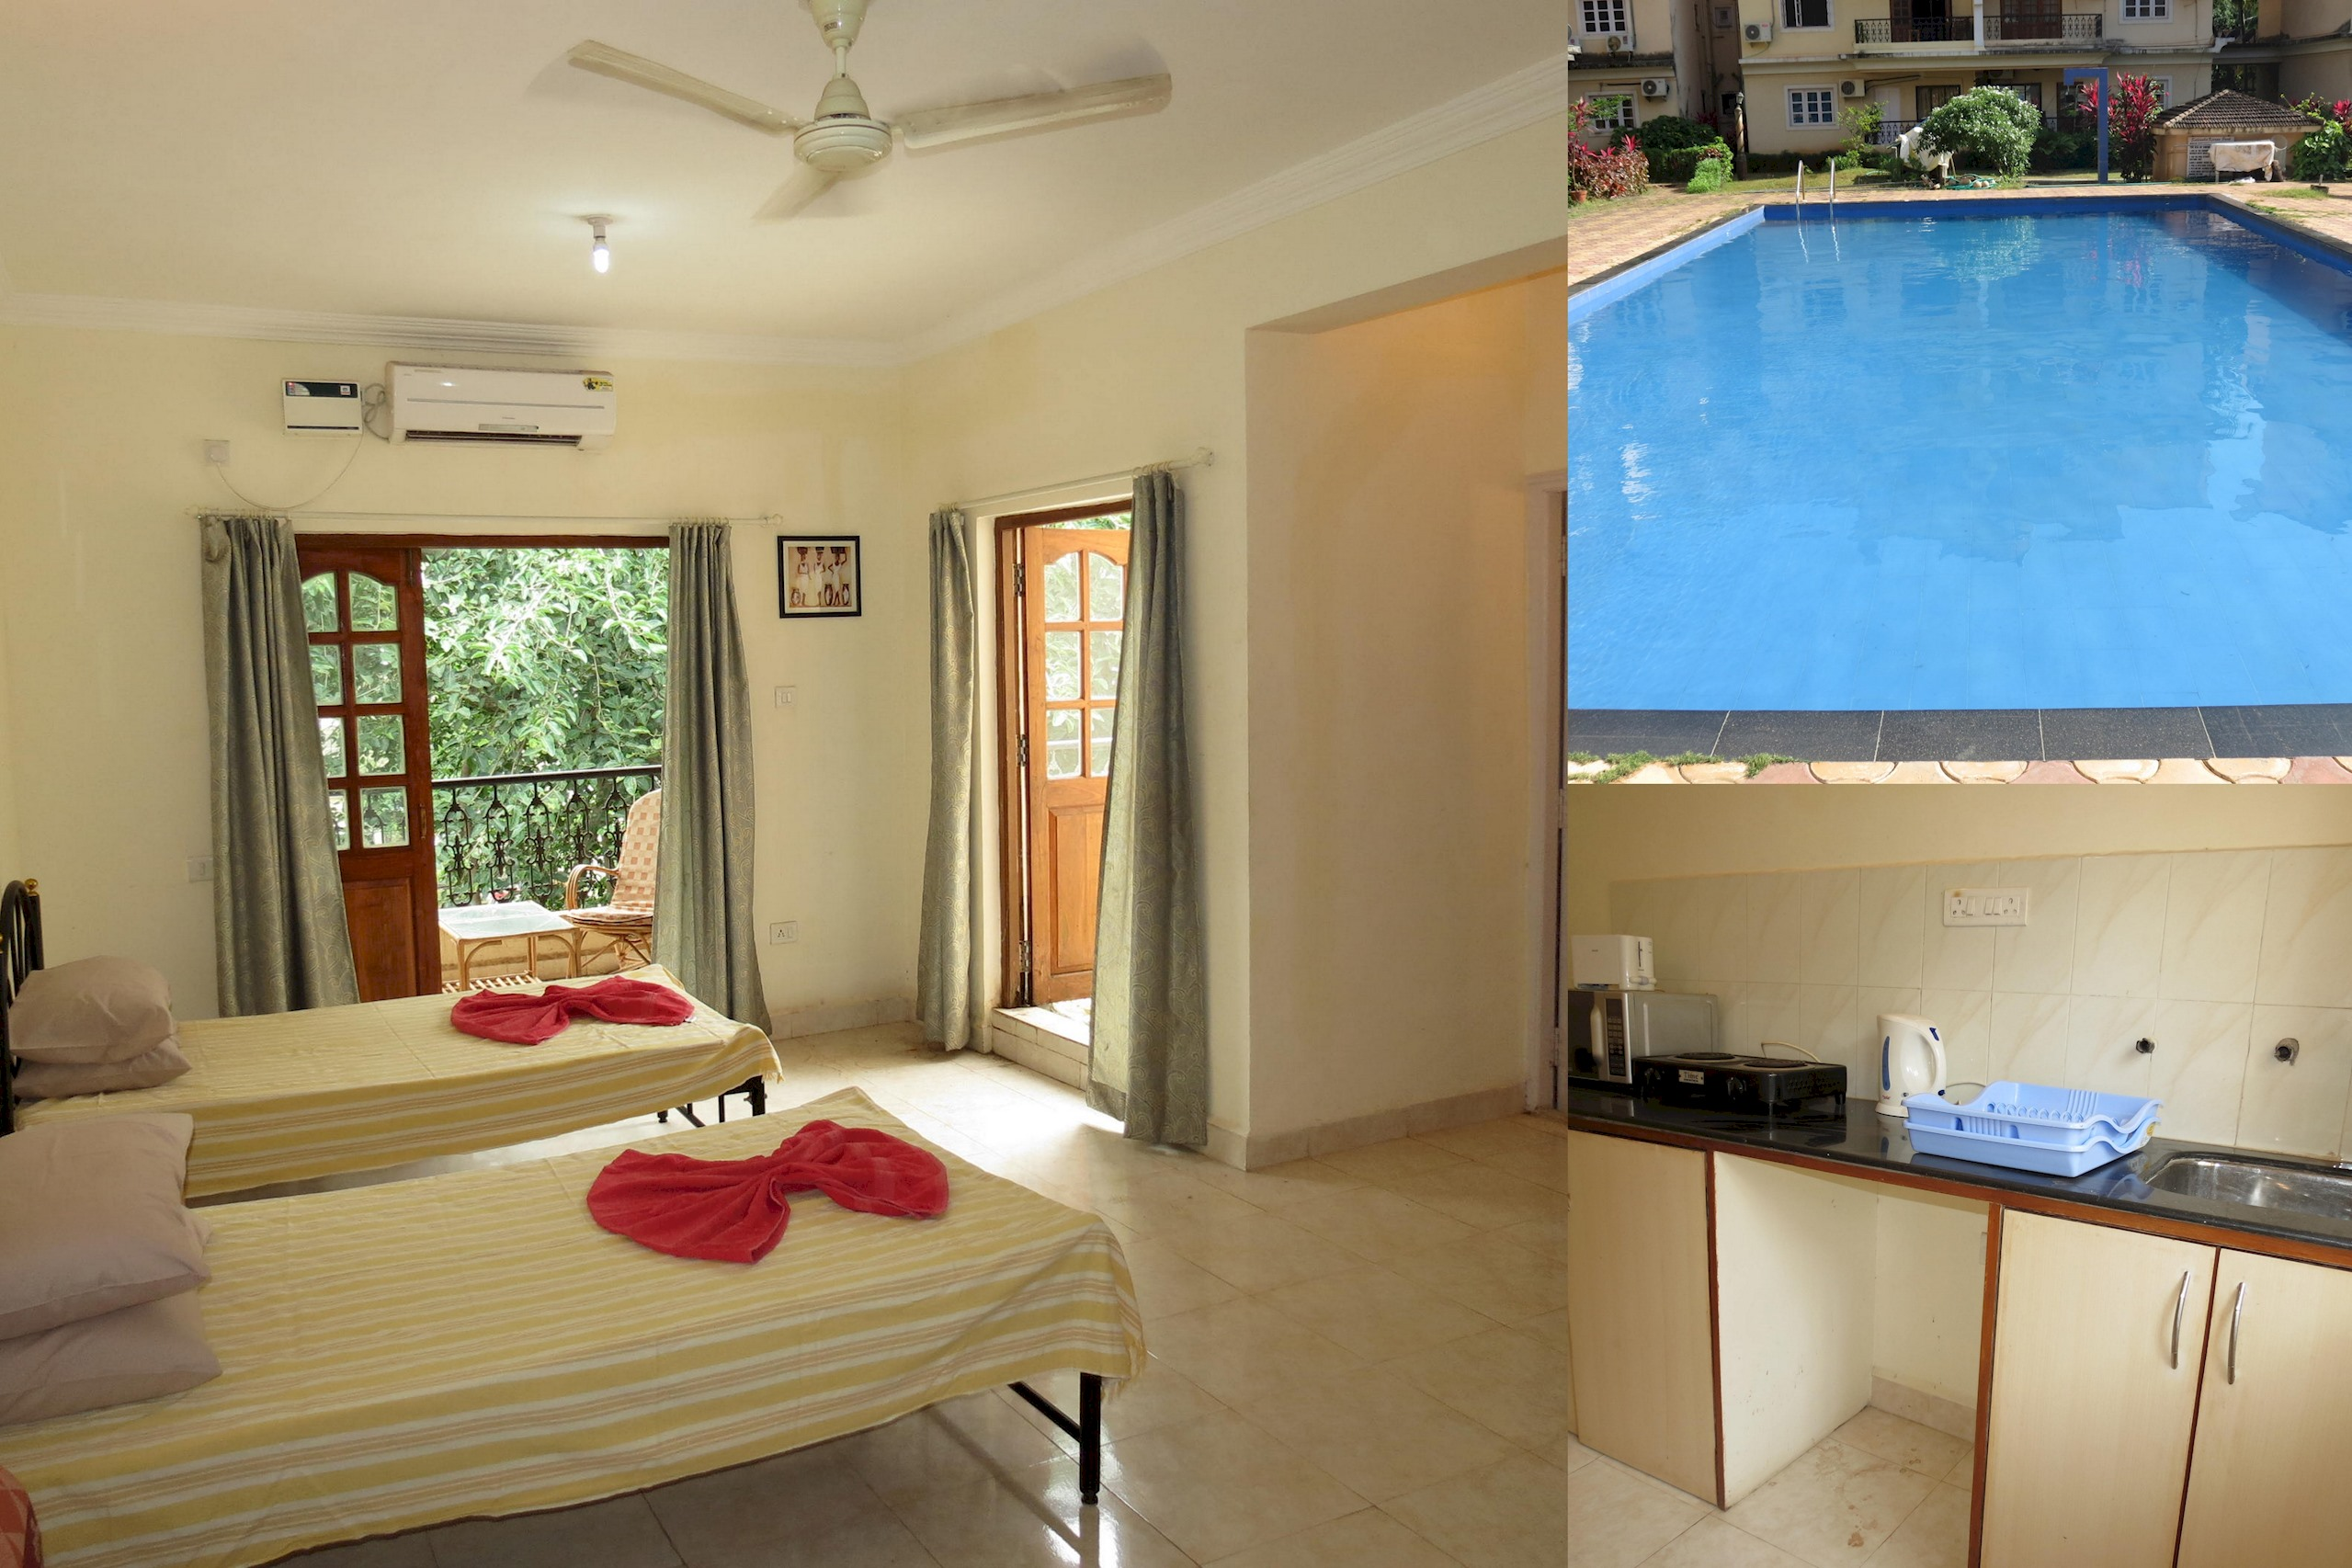 Apartment 37  Central Calangute Serviced Apartment   WiFi photo 20413545